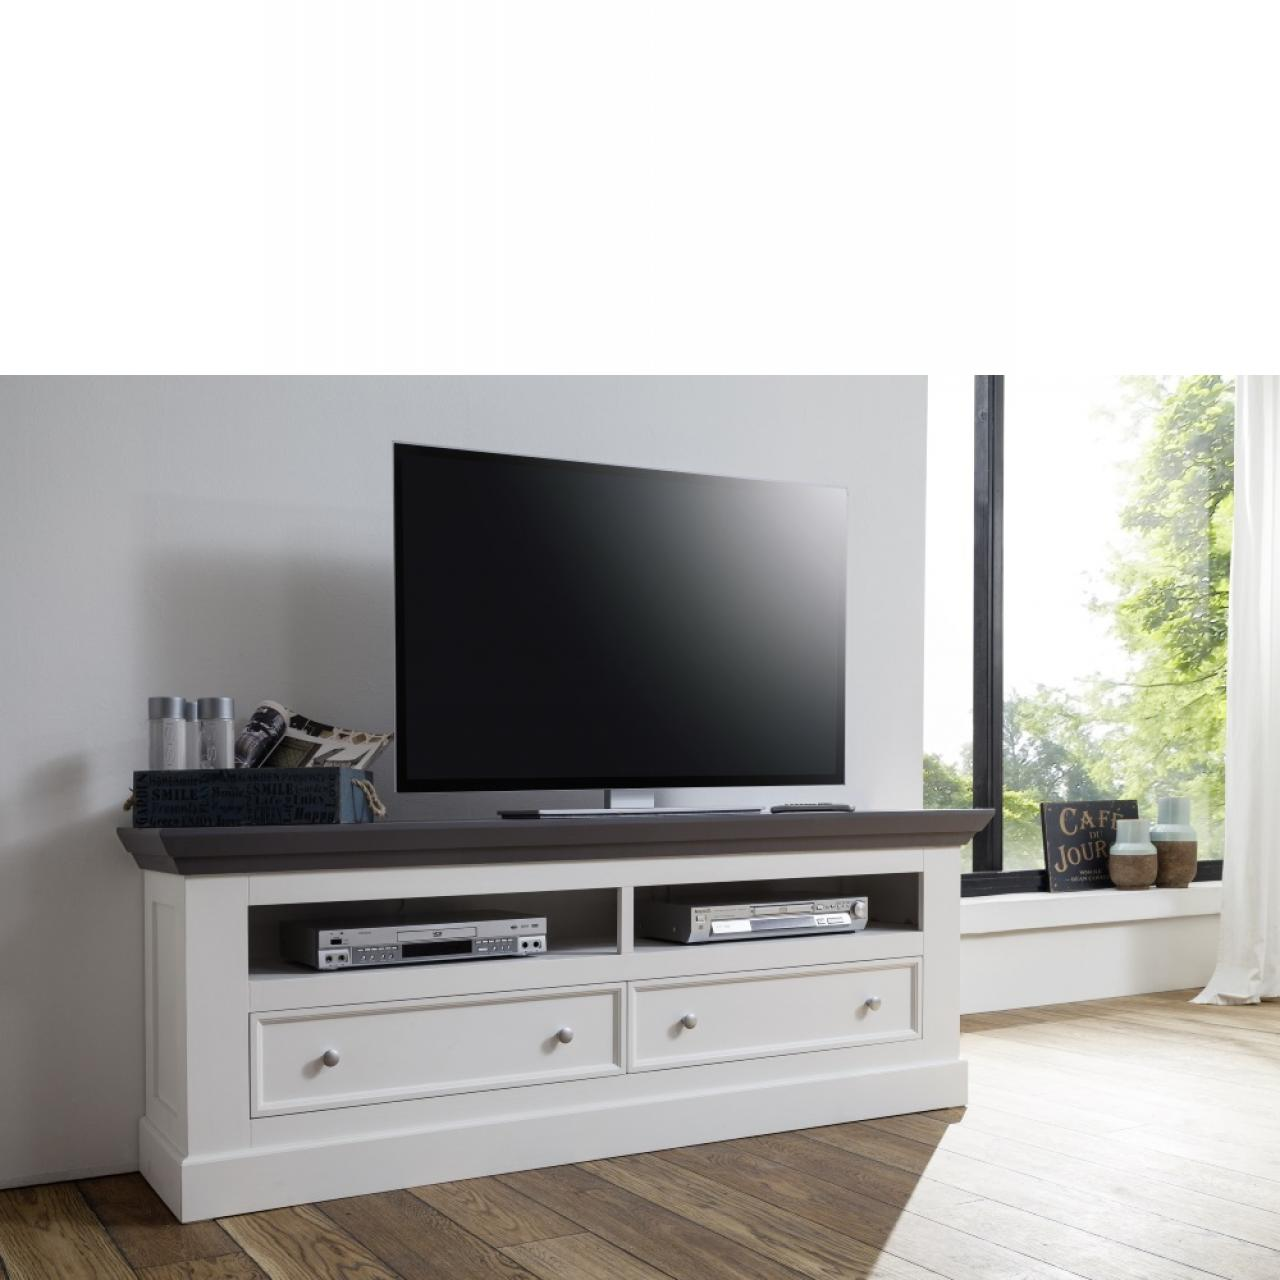 tv schrank wei latest interesting beautiful excellent ikea lappland tv mbel wei in urdorf. Black Bedroom Furniture Sets. Home Design Ideas